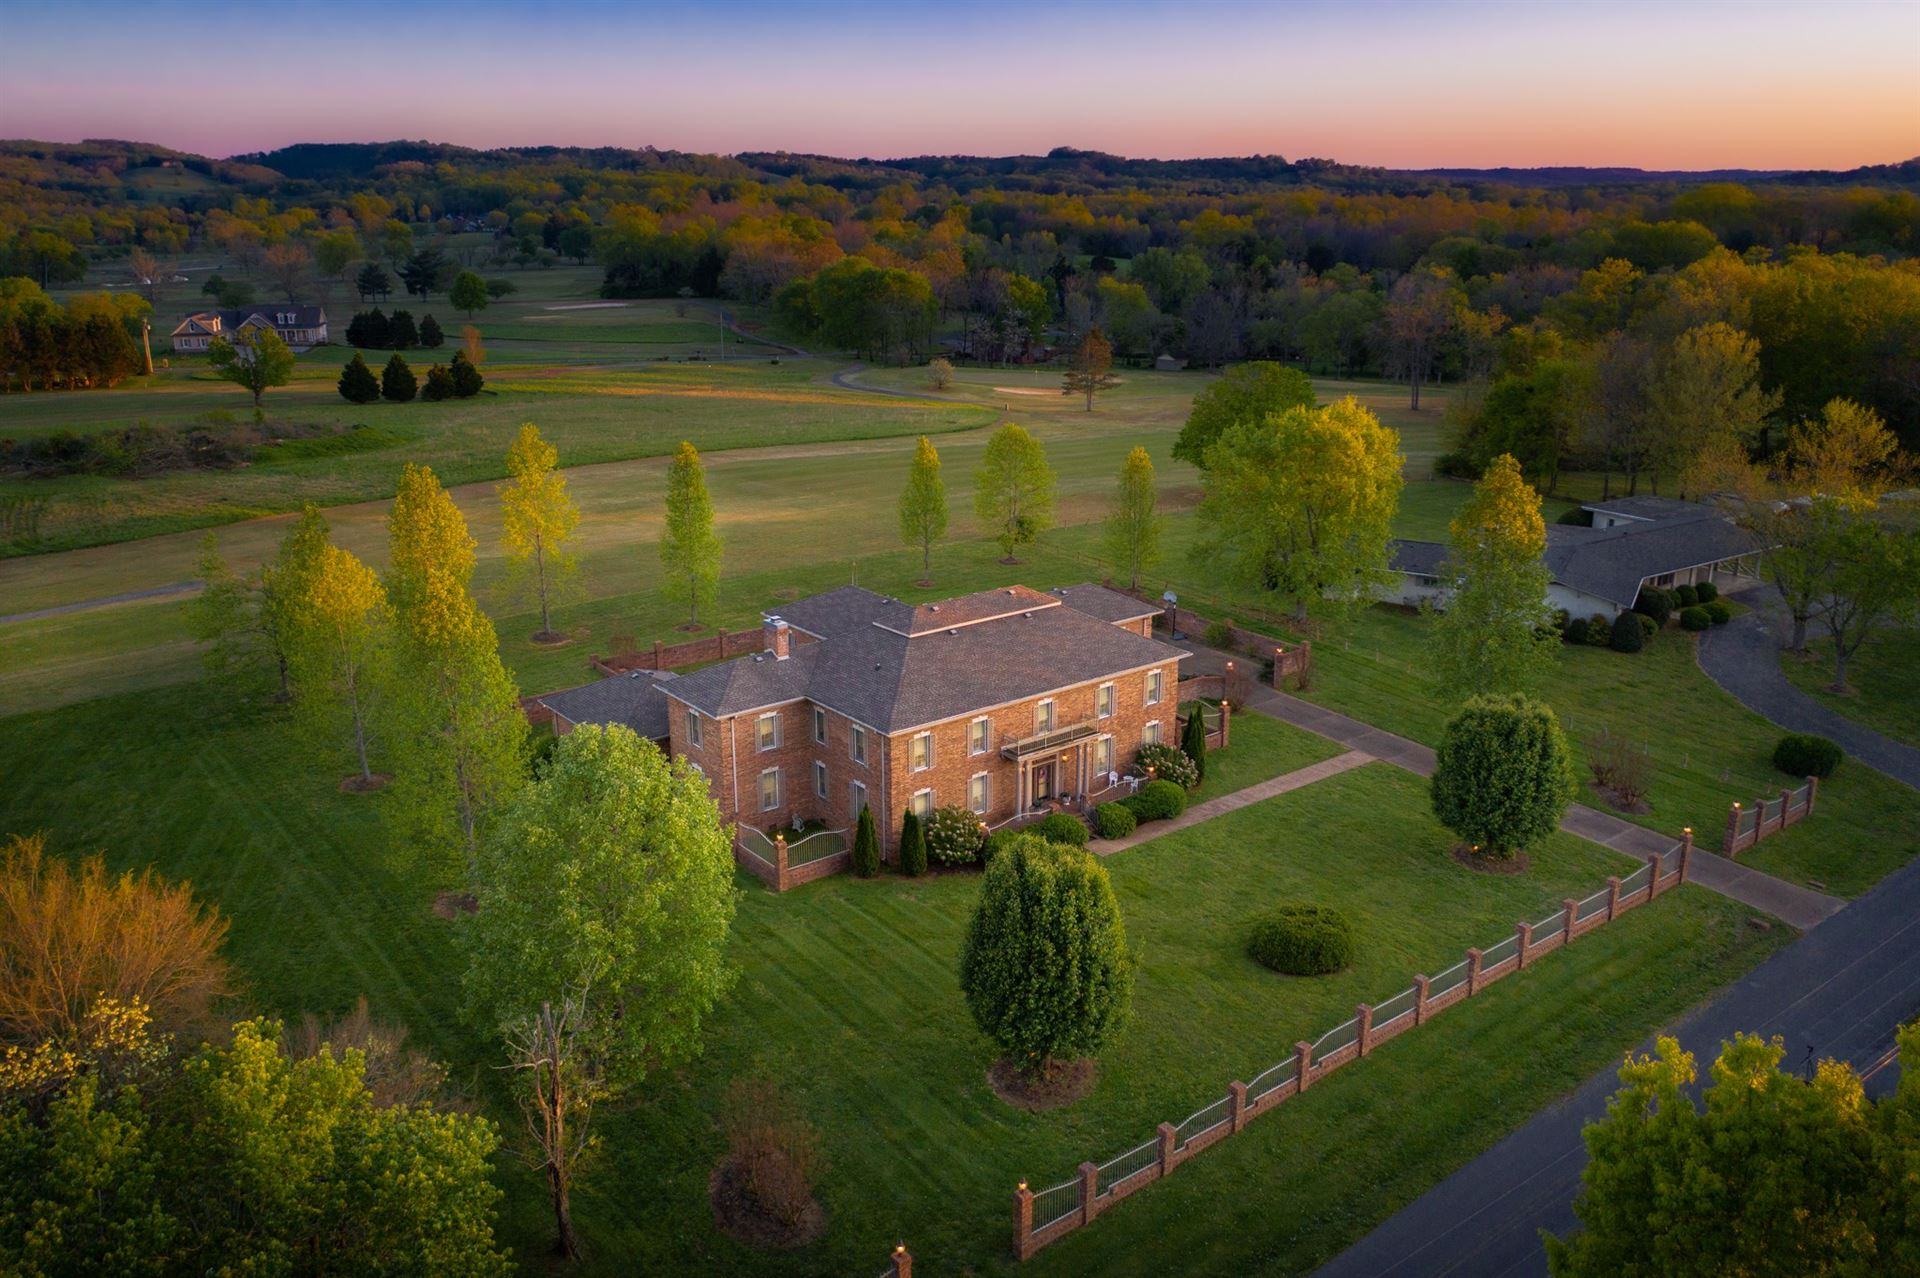 361 River Bend Country Club Rd, Shelbyville, TN 37160 - MLS#: 2142030